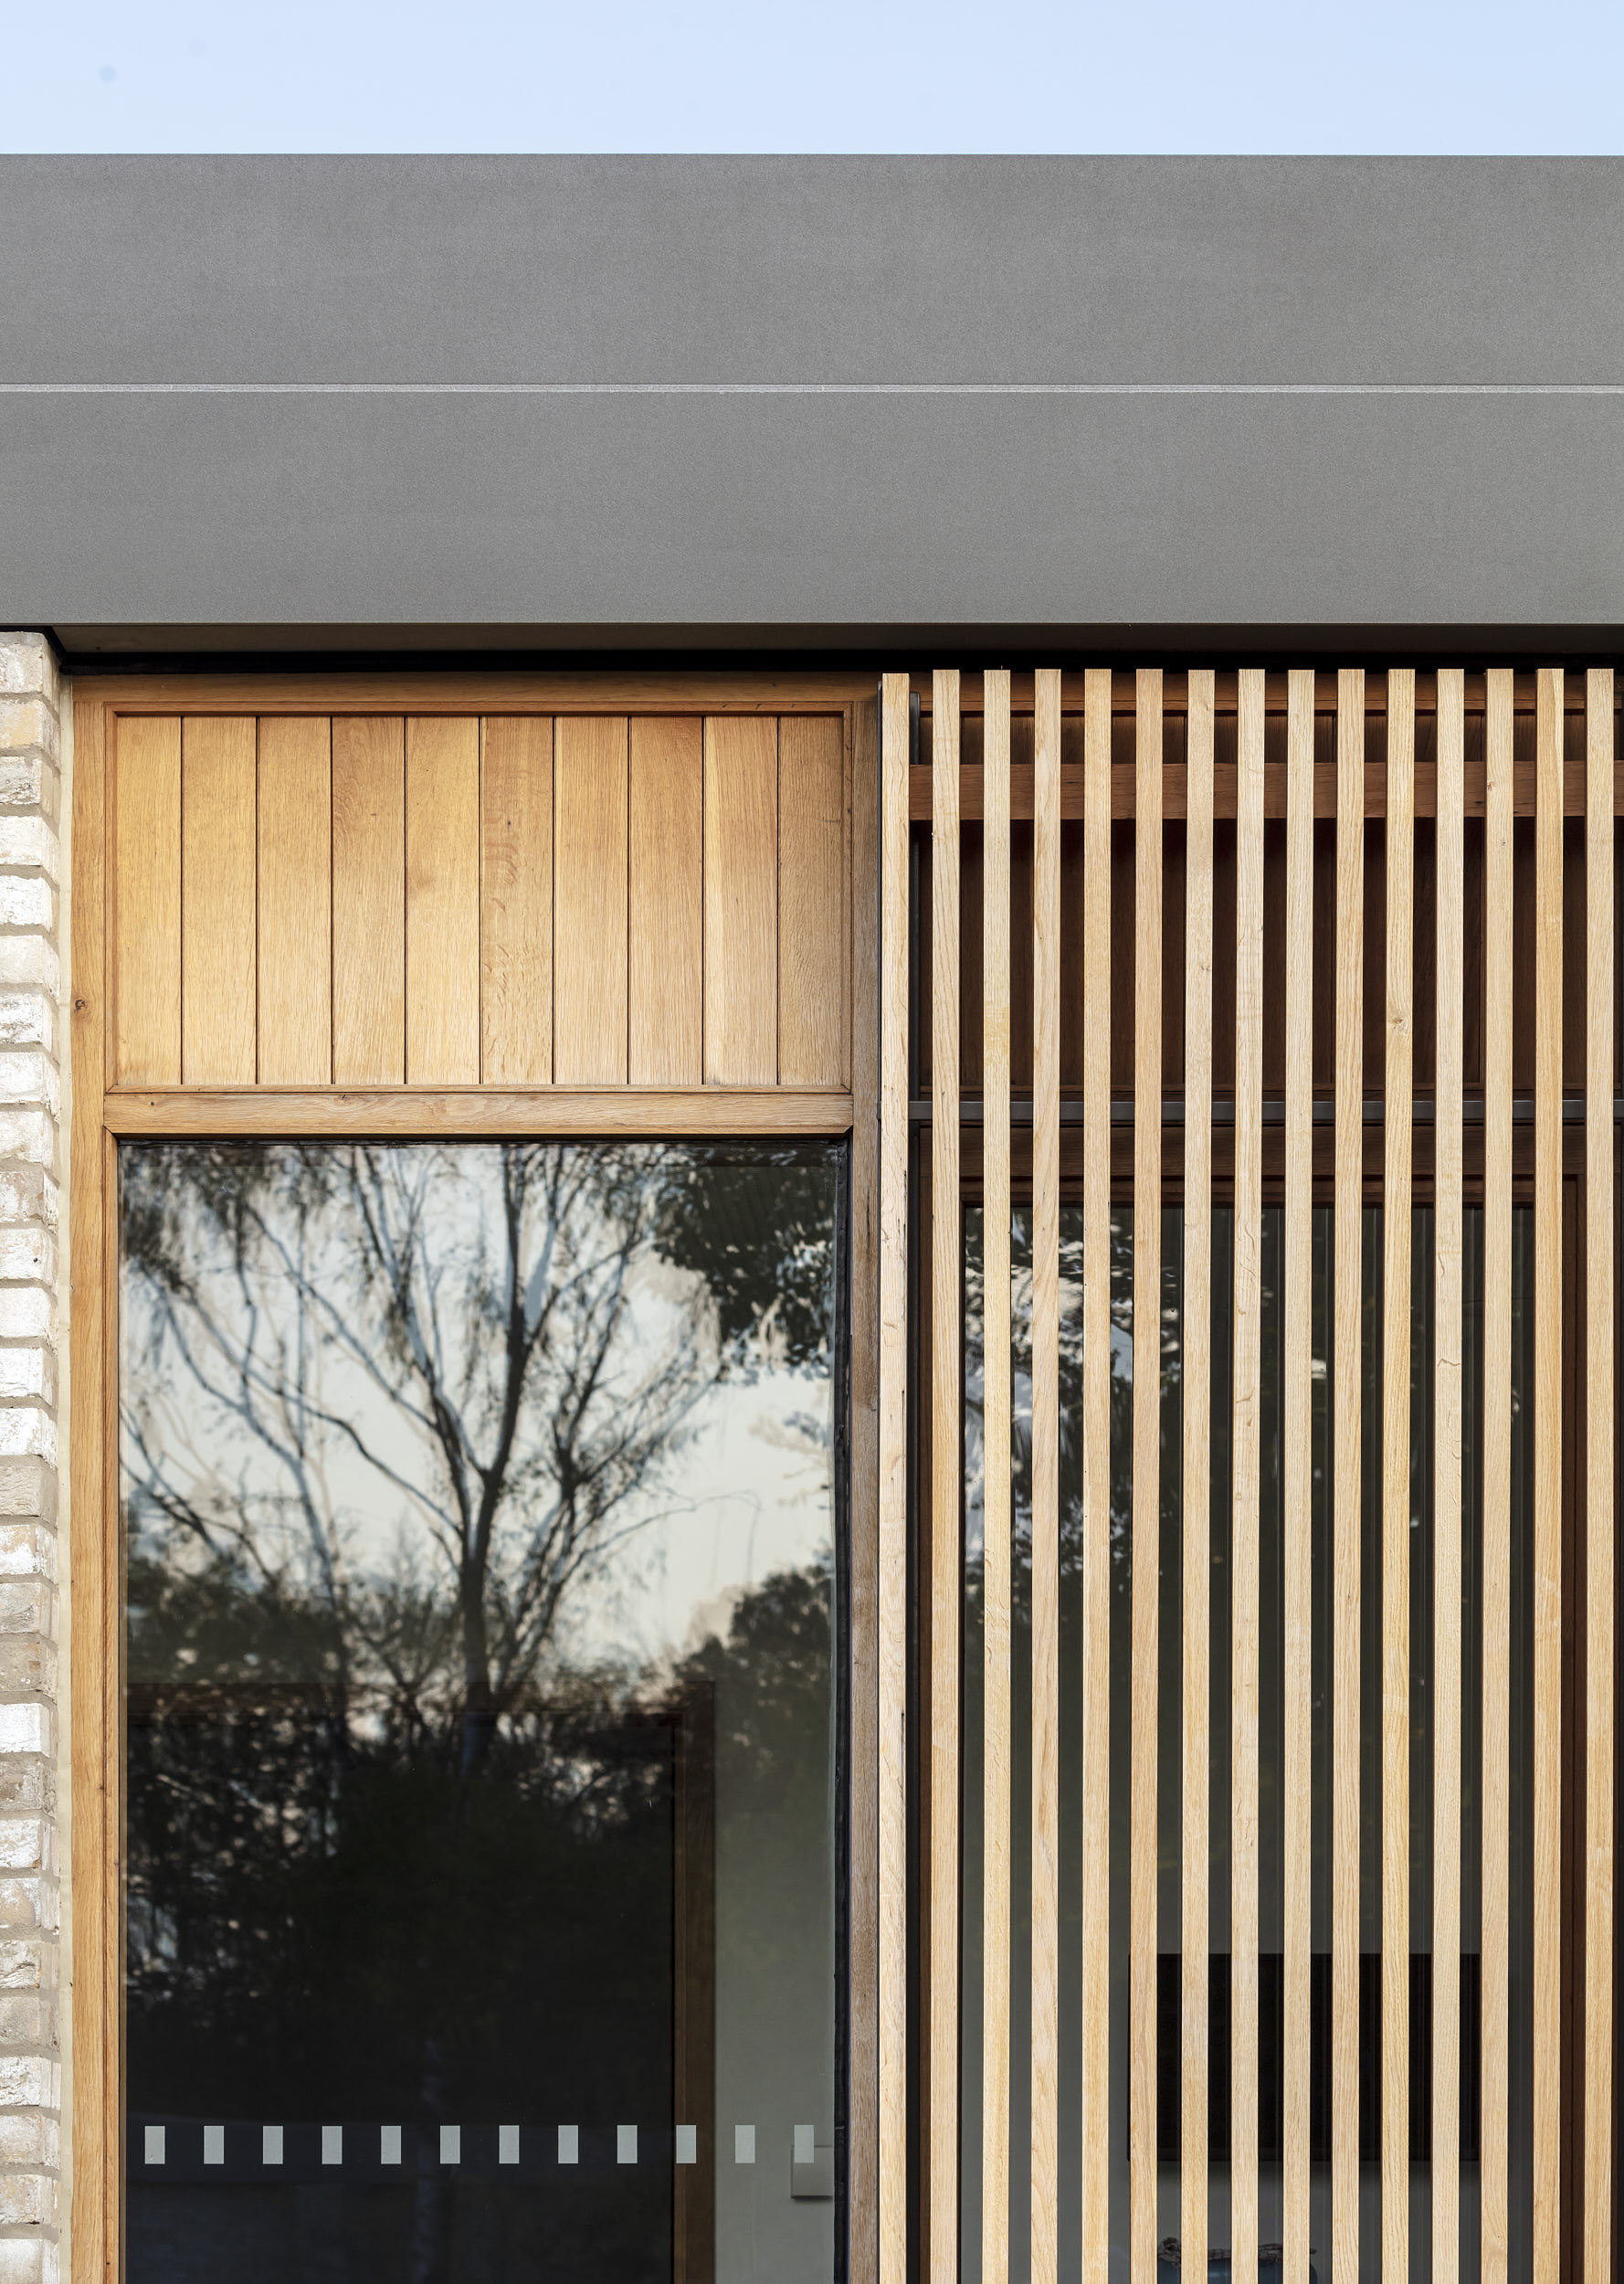 Exterior architectural detail photograph showing timber louvres and facade details.